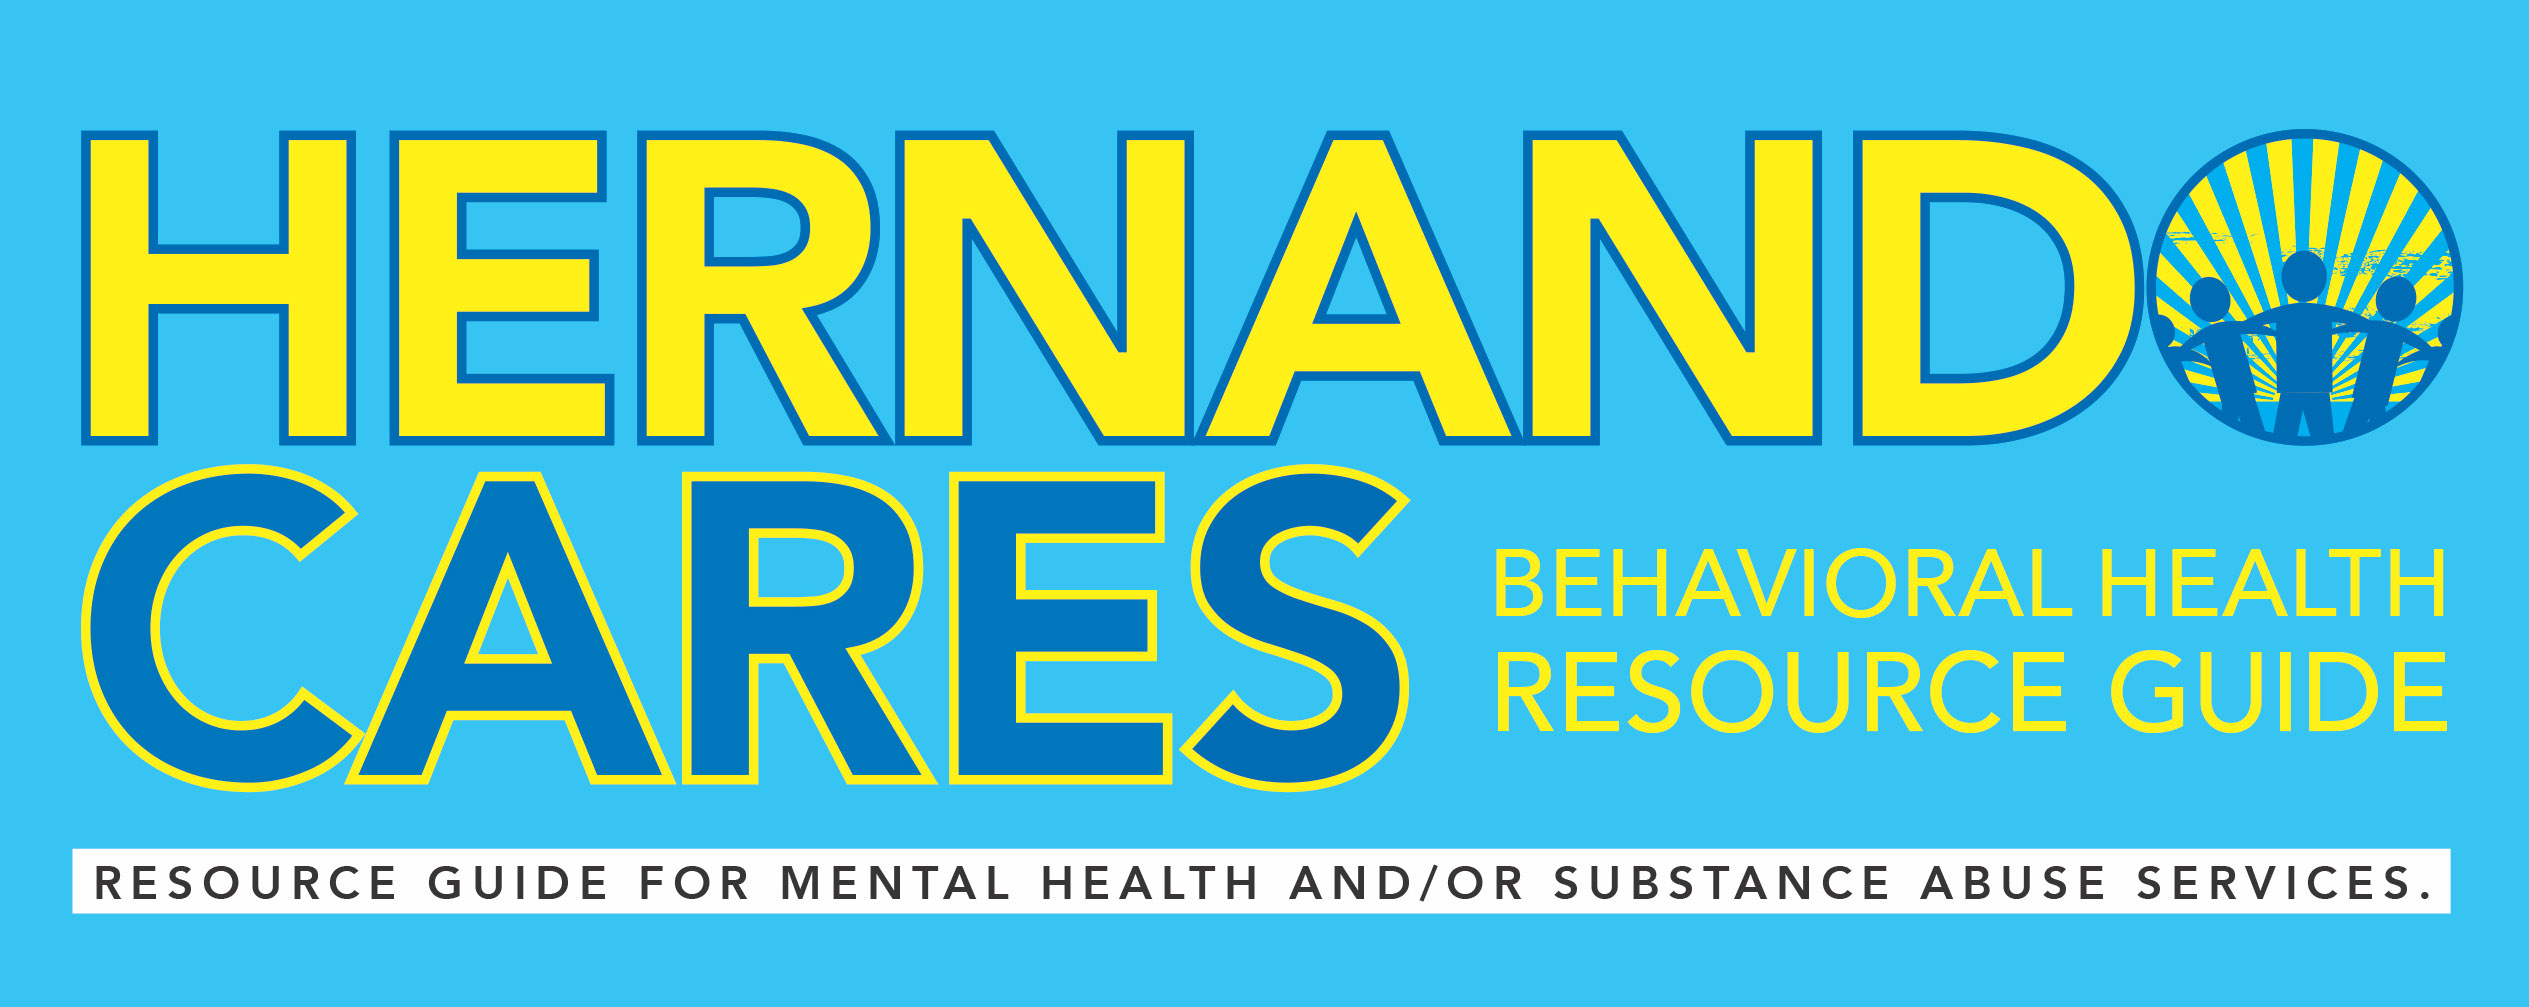 Hernando Cares Behavioral Health Resource Guide